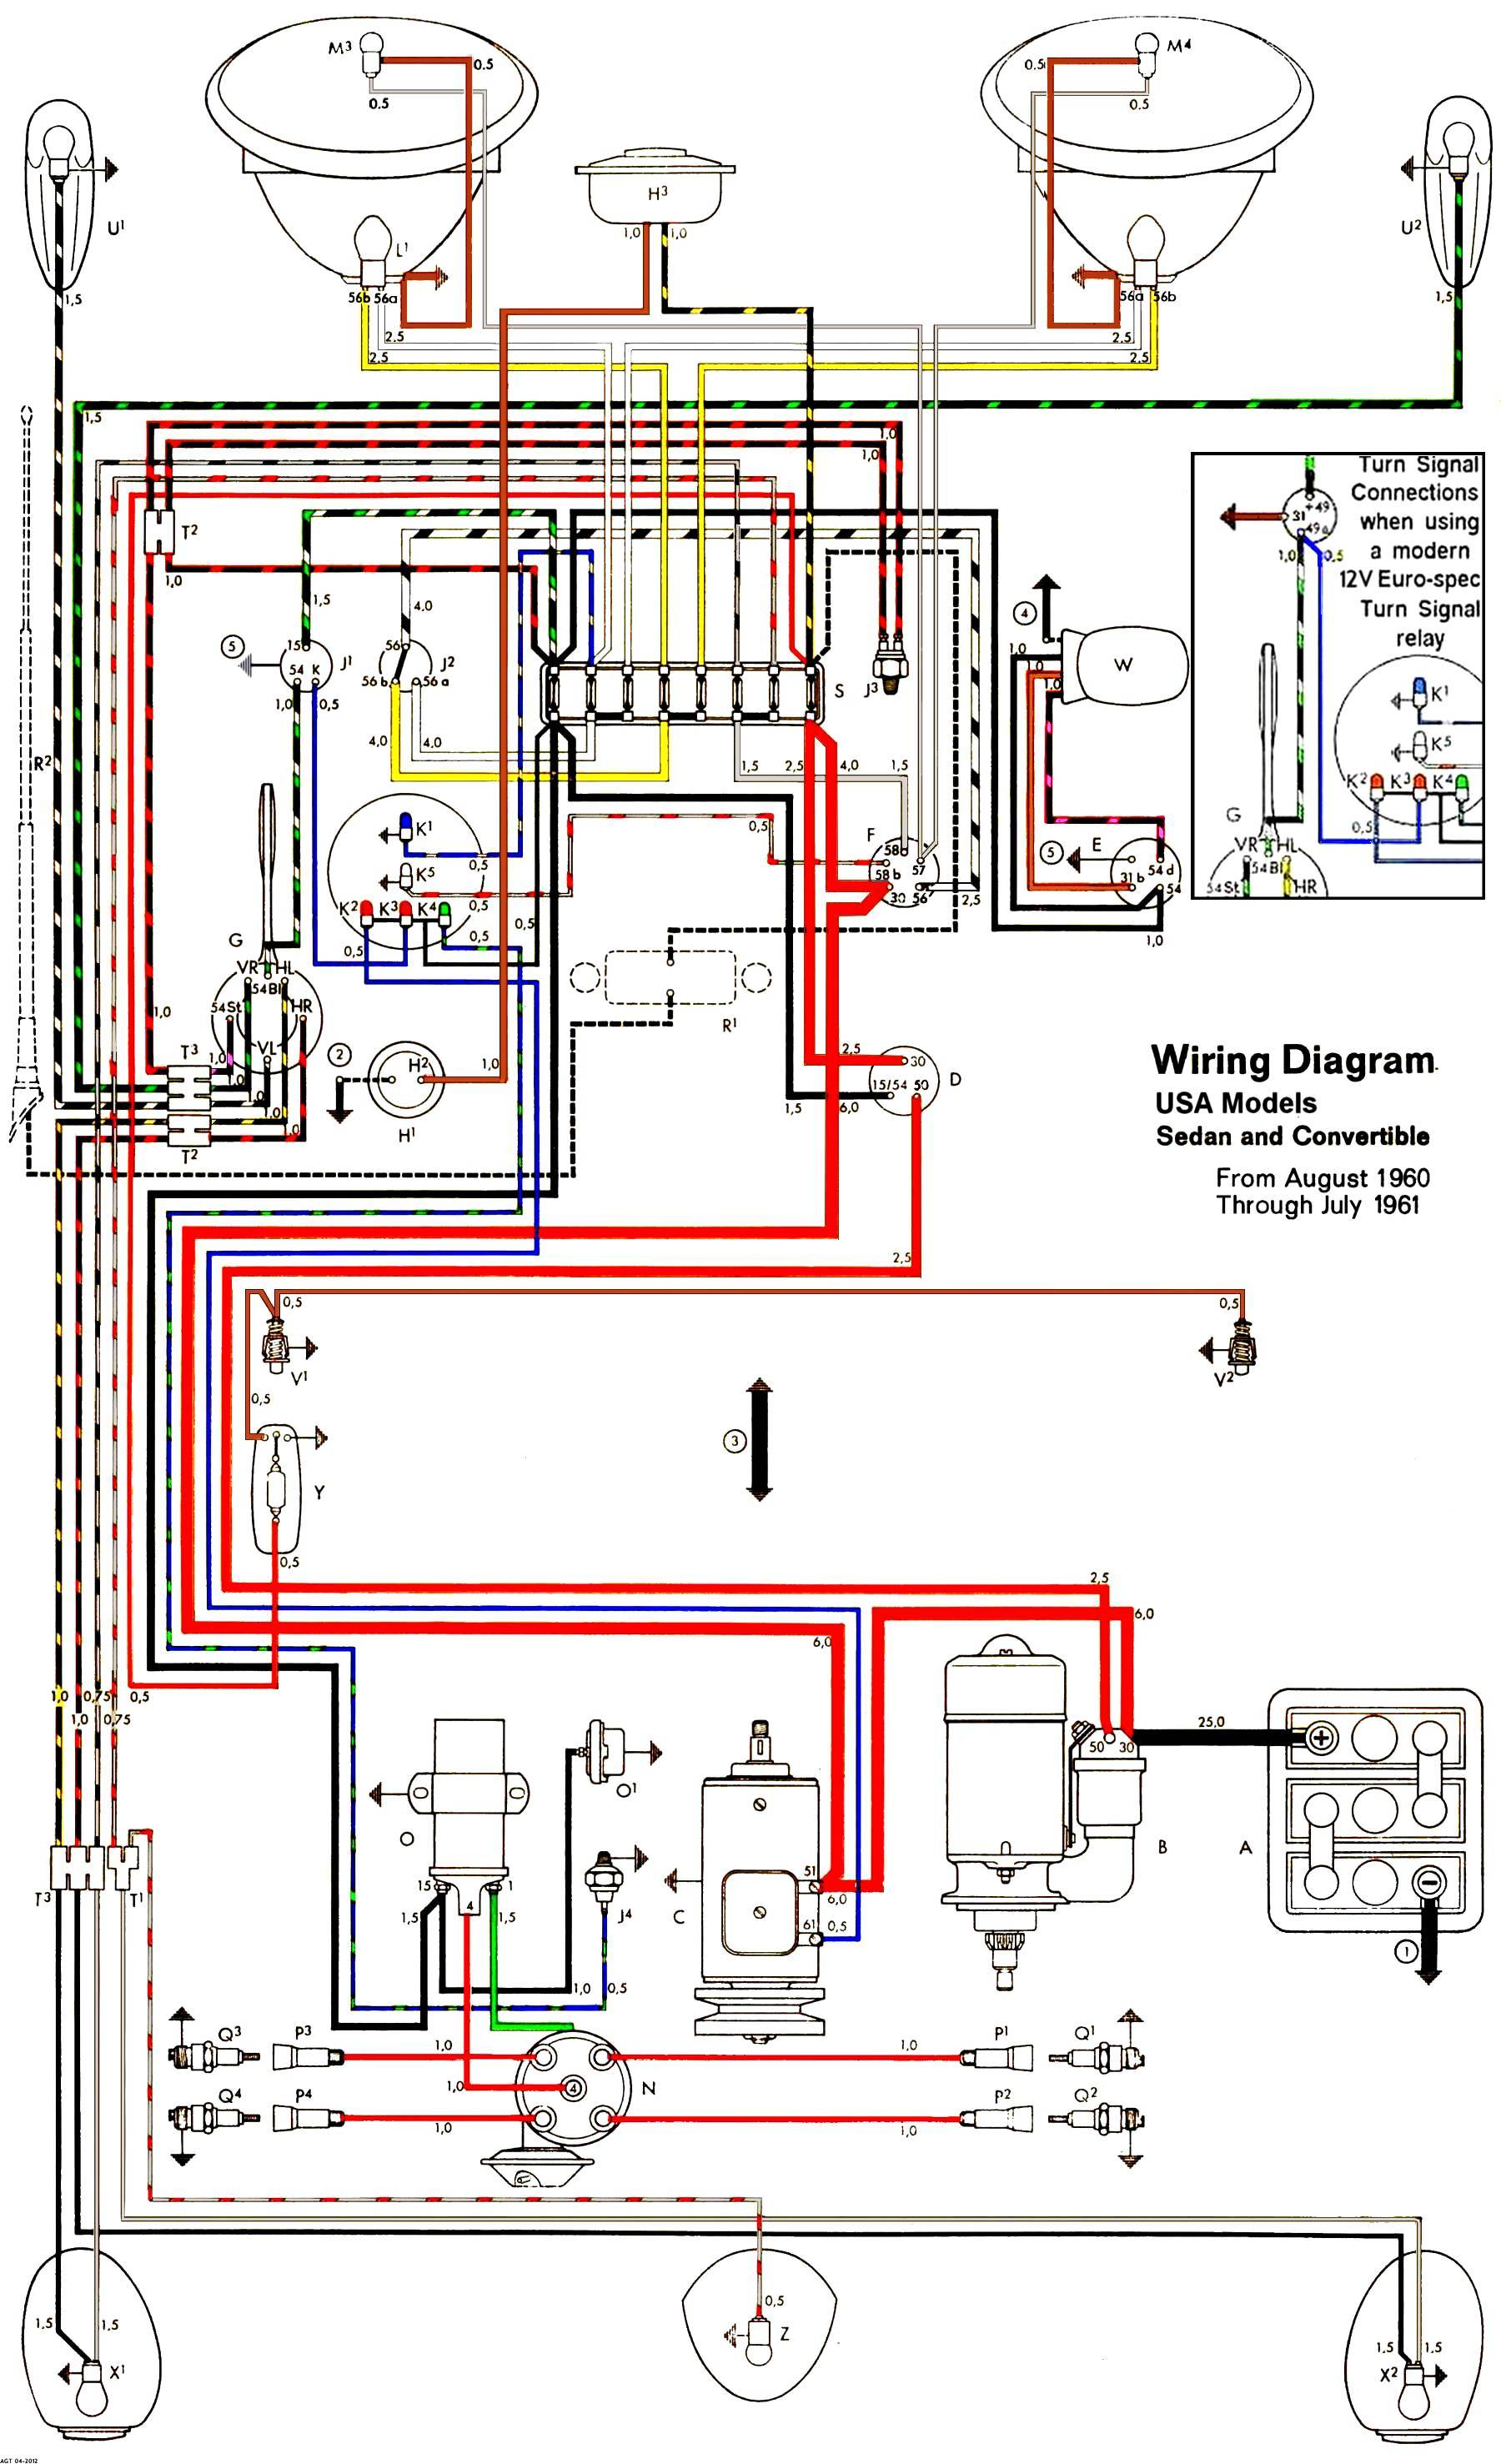 1961USA T1 s www thesamba com vw archives info wiring 1 68 VW Wiring Diagram at mifinder.co